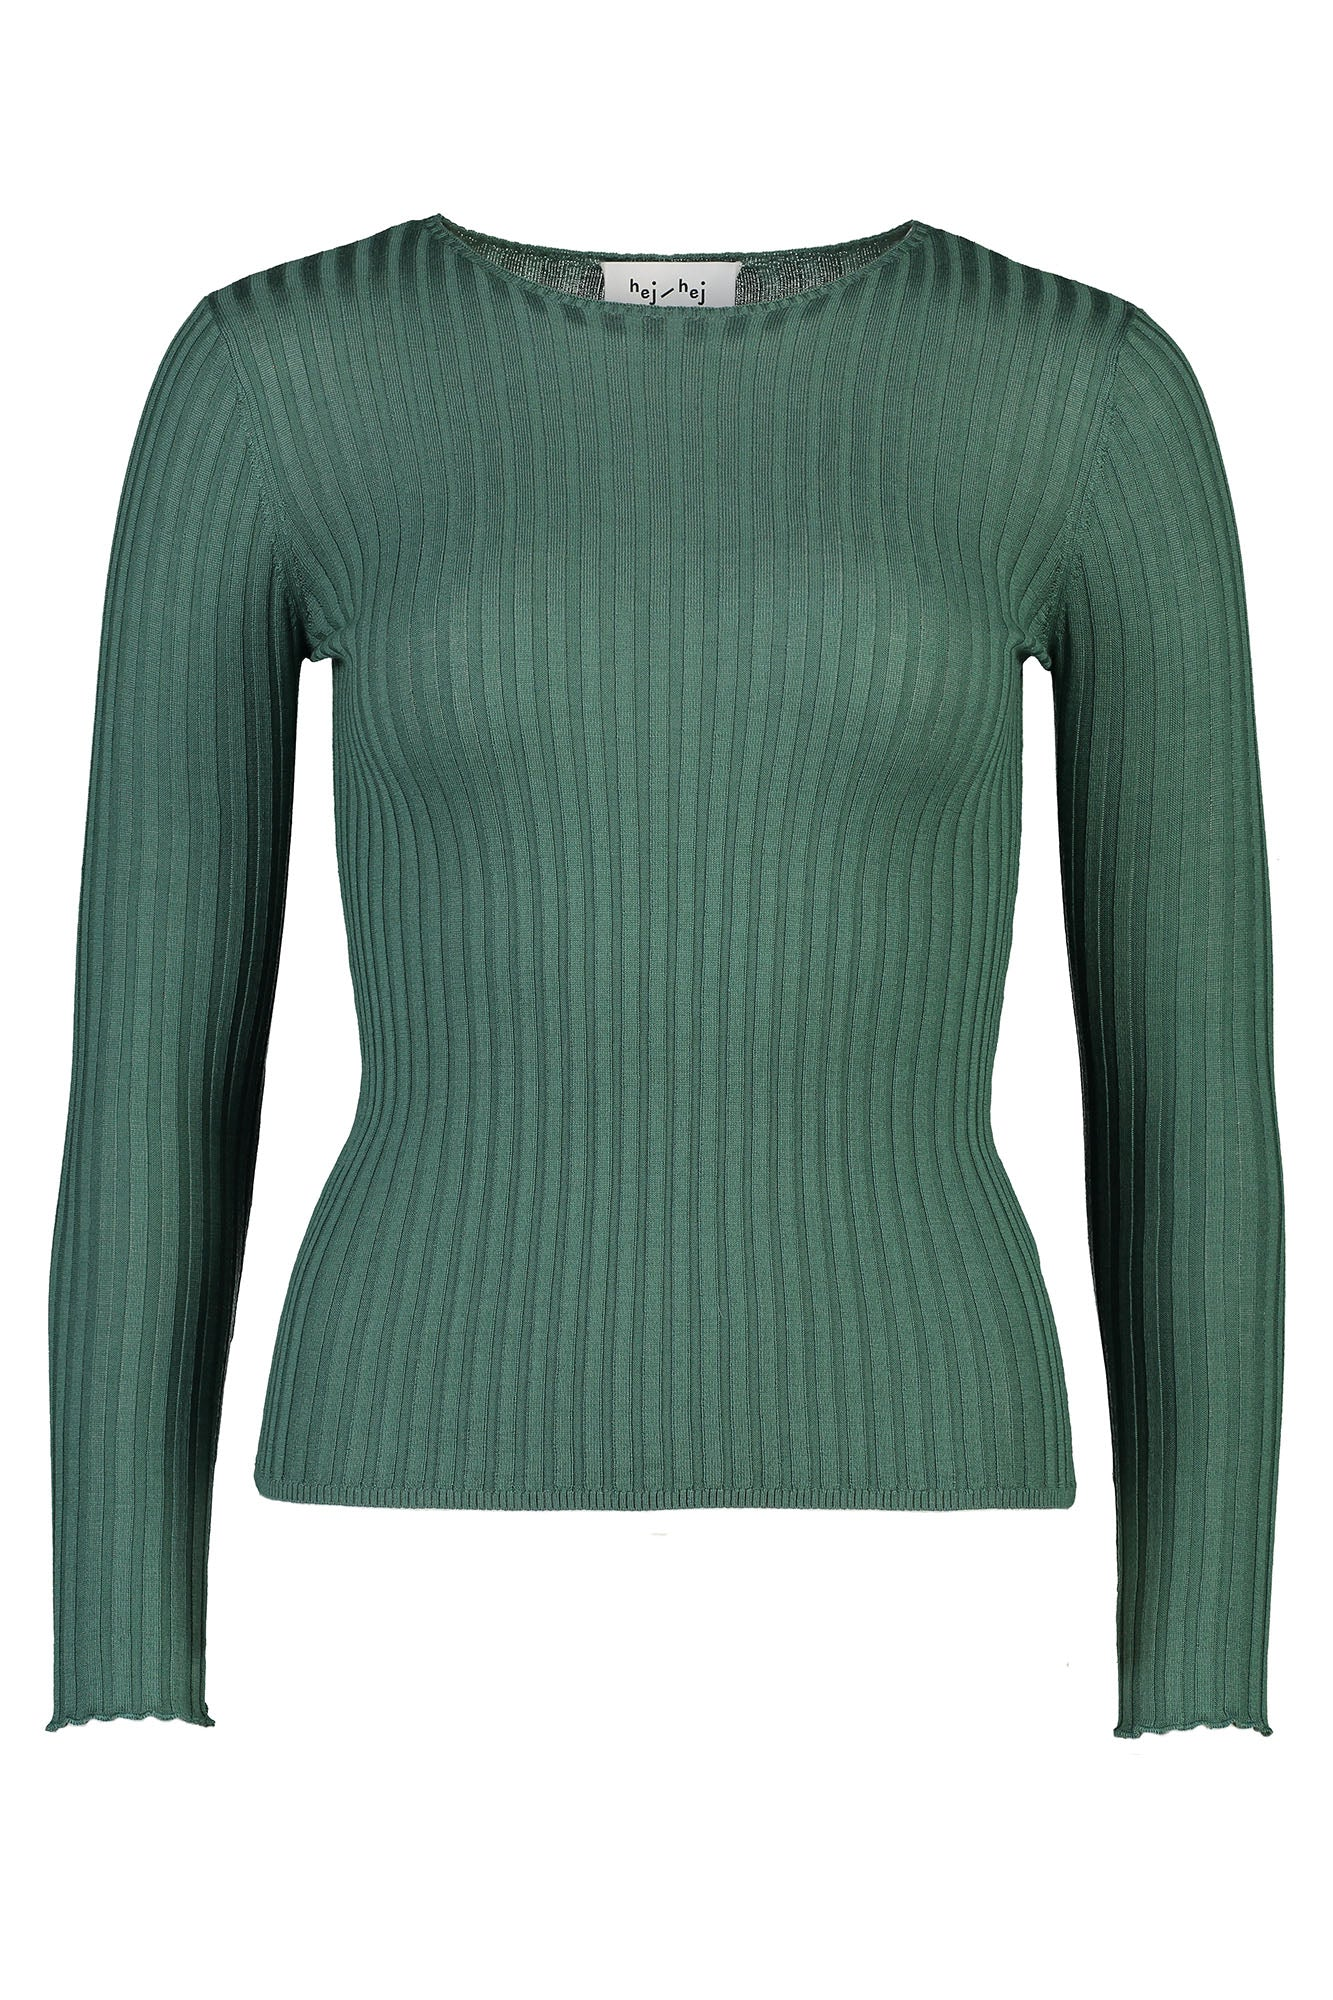 You've Gotta Be Kidman Knit in Sage - hej hej